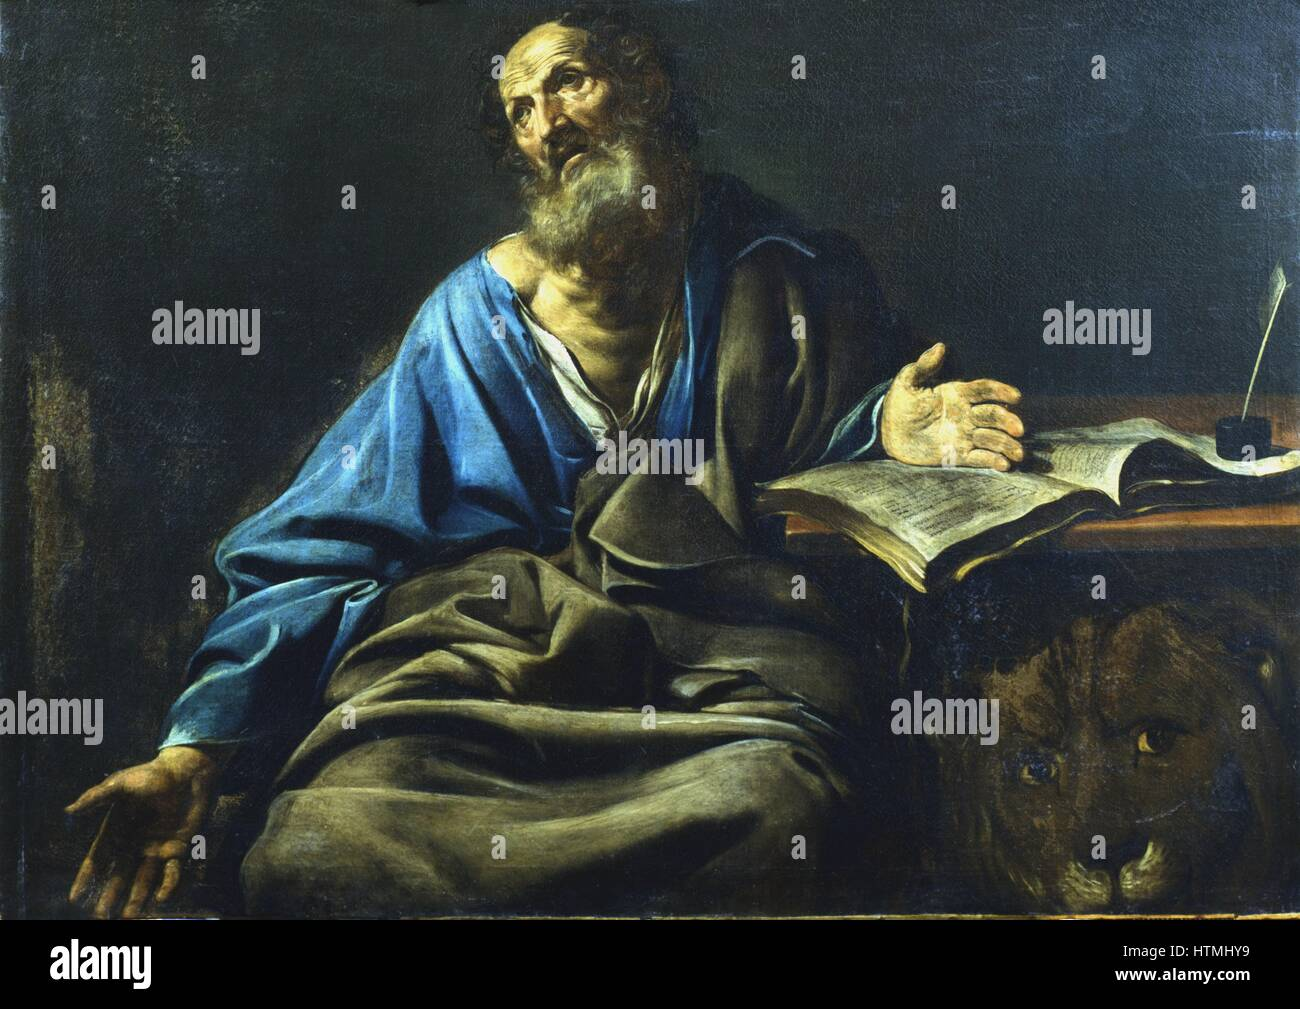 Valentin DE BOULOGNE (1591-1632). St Mark the Evangelist. From under the table St Mark's symbol, the lion, looks - Stock Image